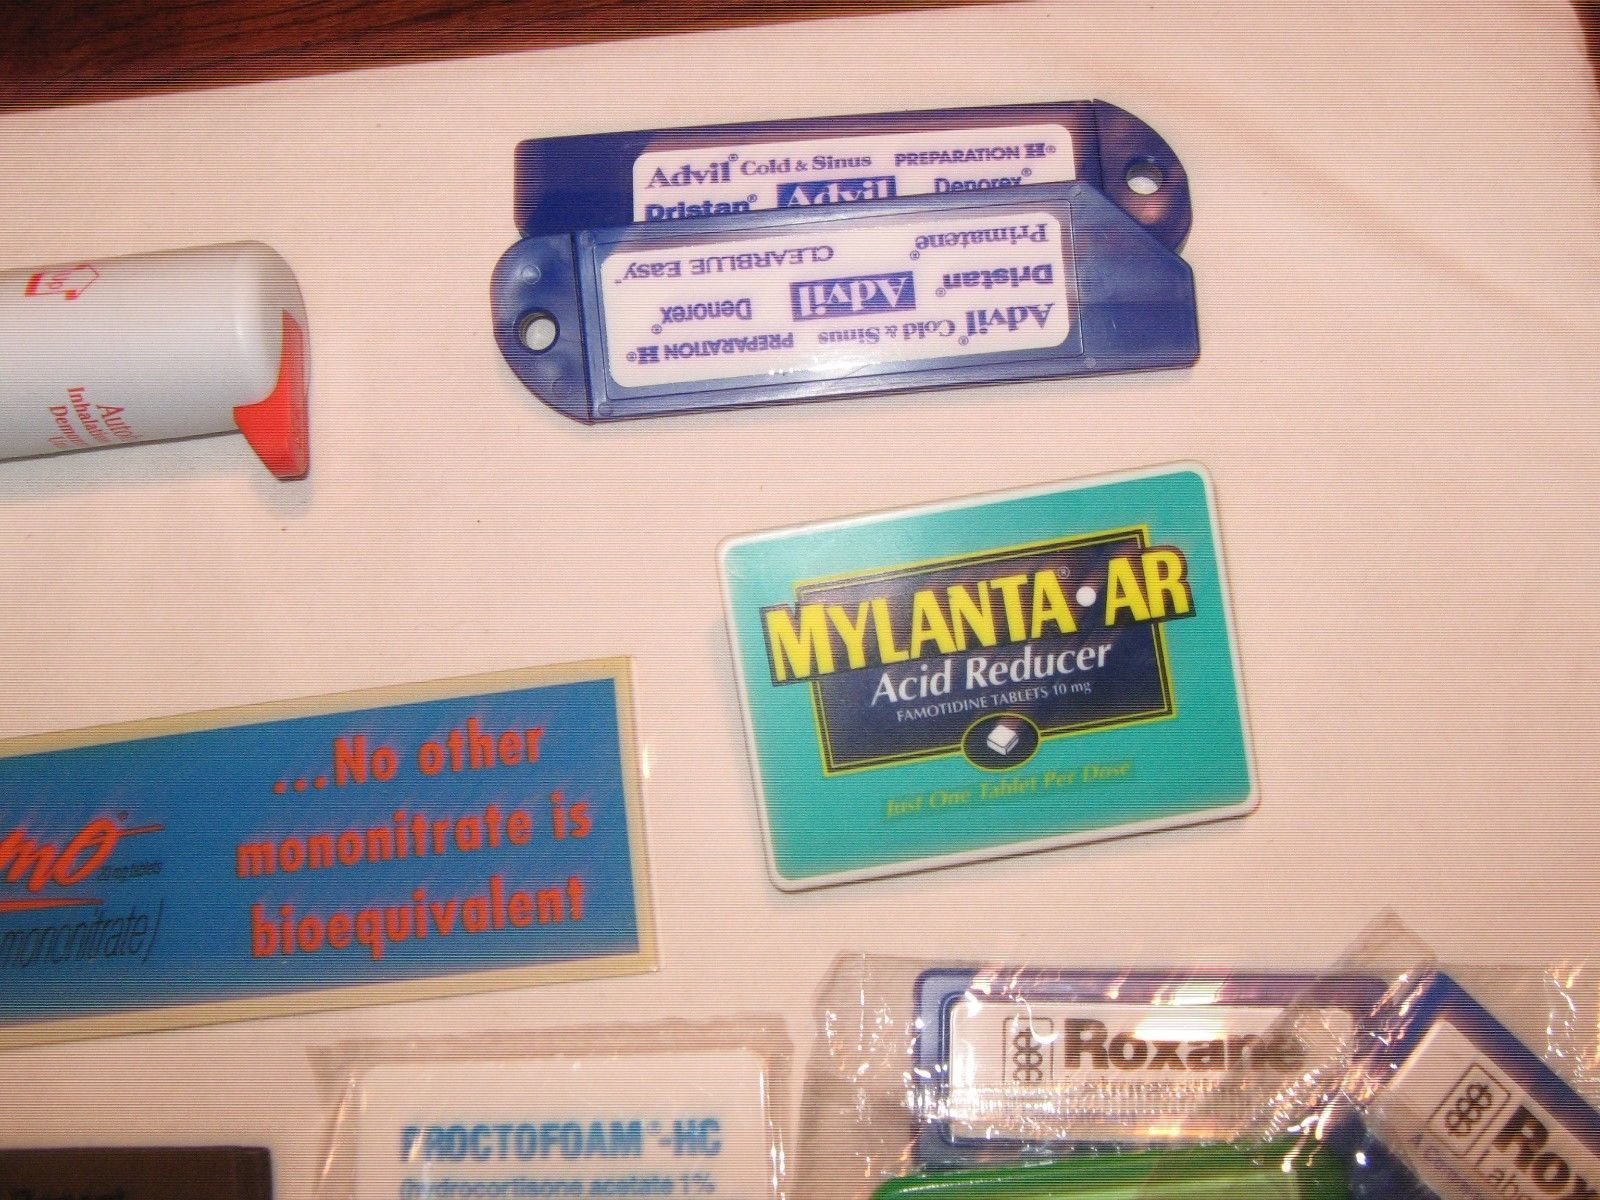 Rx, Pharmacy Promotional Items, Mixed Lot image 11